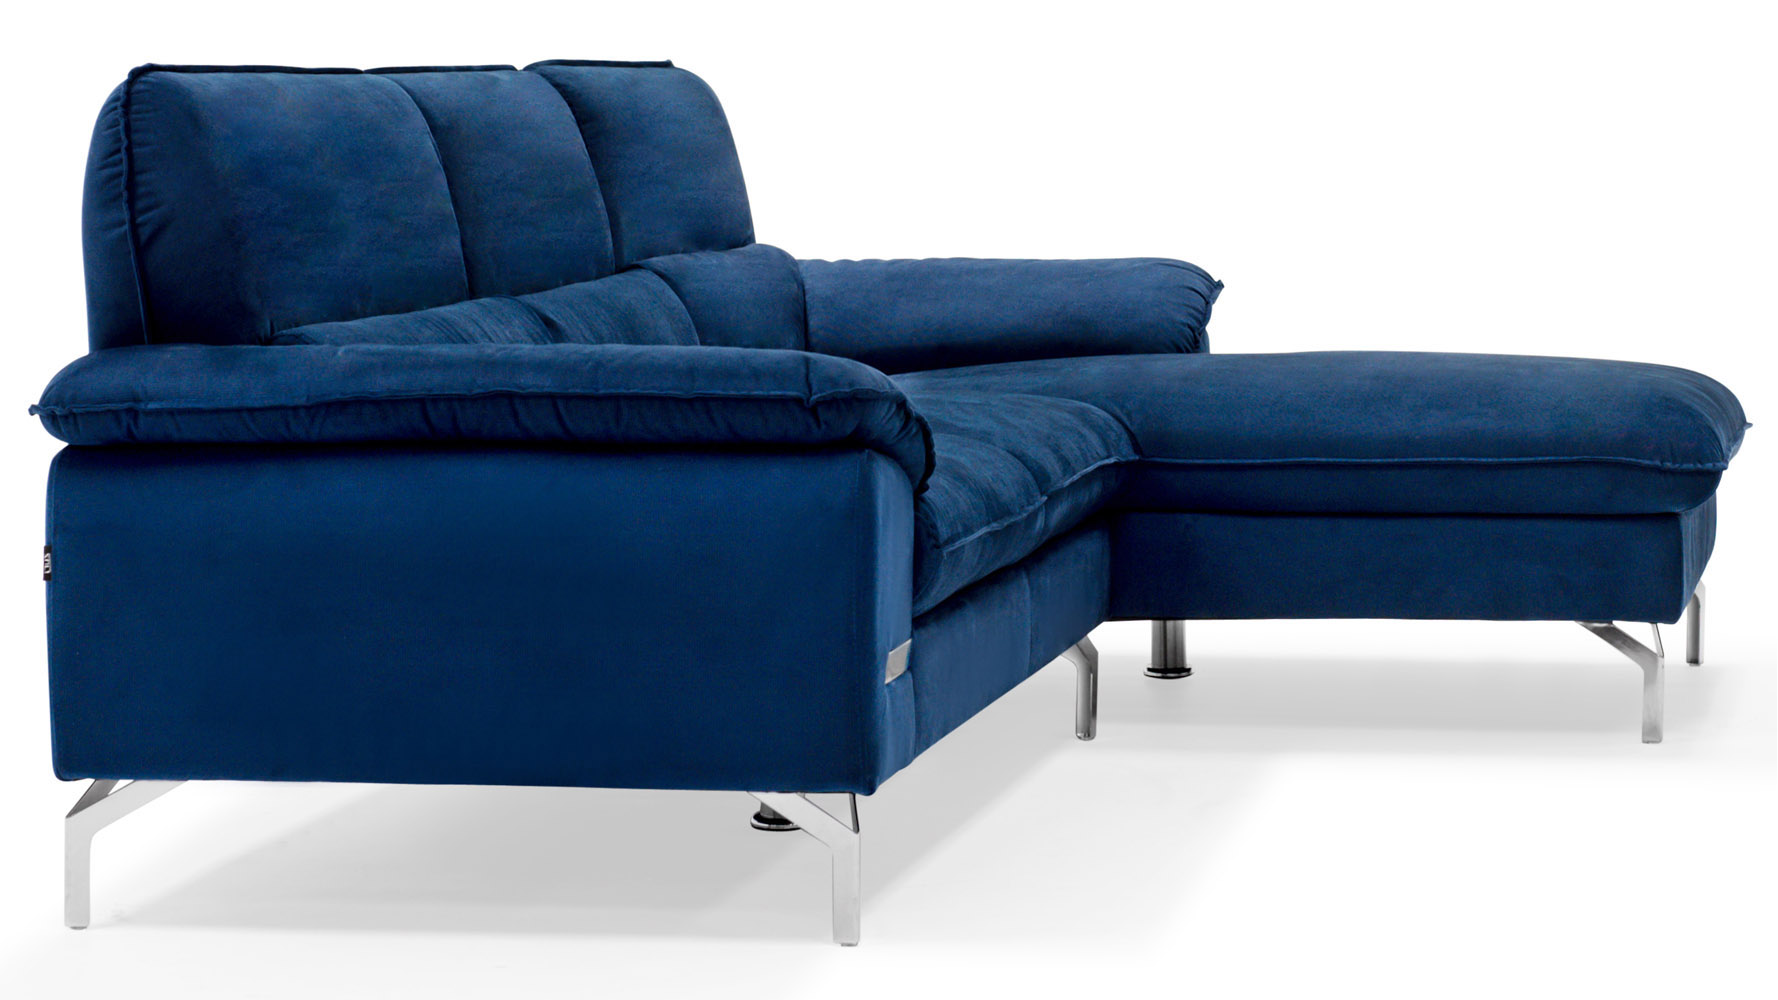 navy blue velvet sofa canada diana dark brown leather sectional set  review home decor